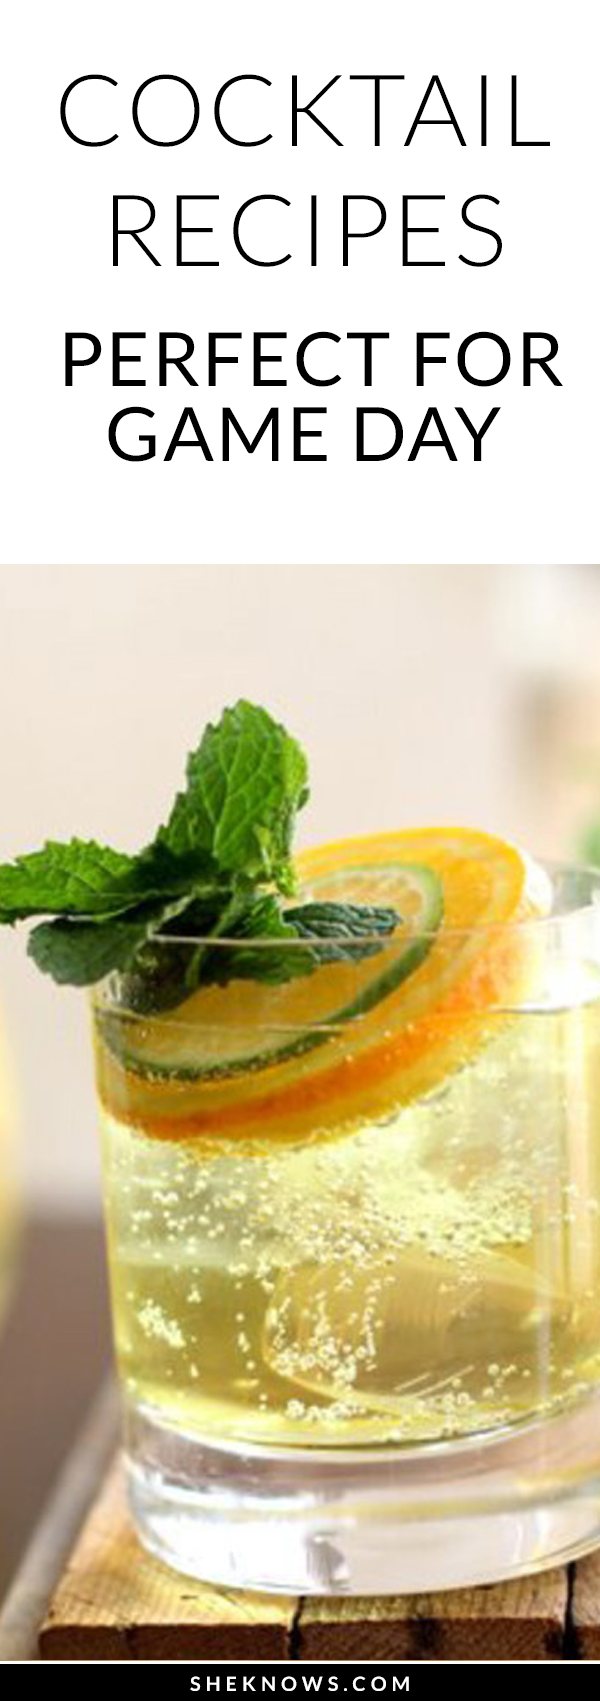 Pin it! Cocktail recipes for game day